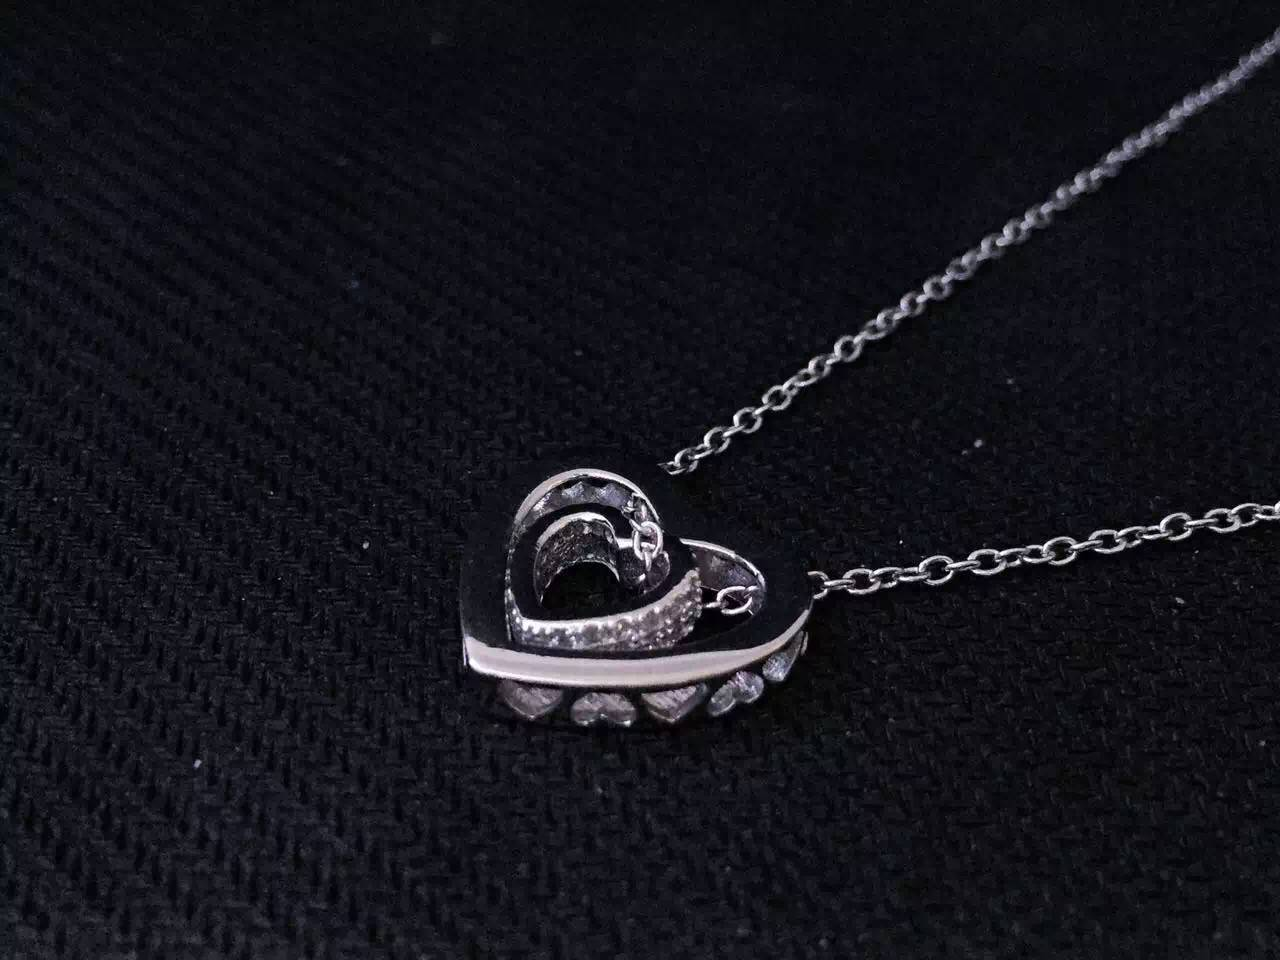 NEFFLY Pierced Heart Necklace classic 925Silver Plated Platinum FREE SHIPPING